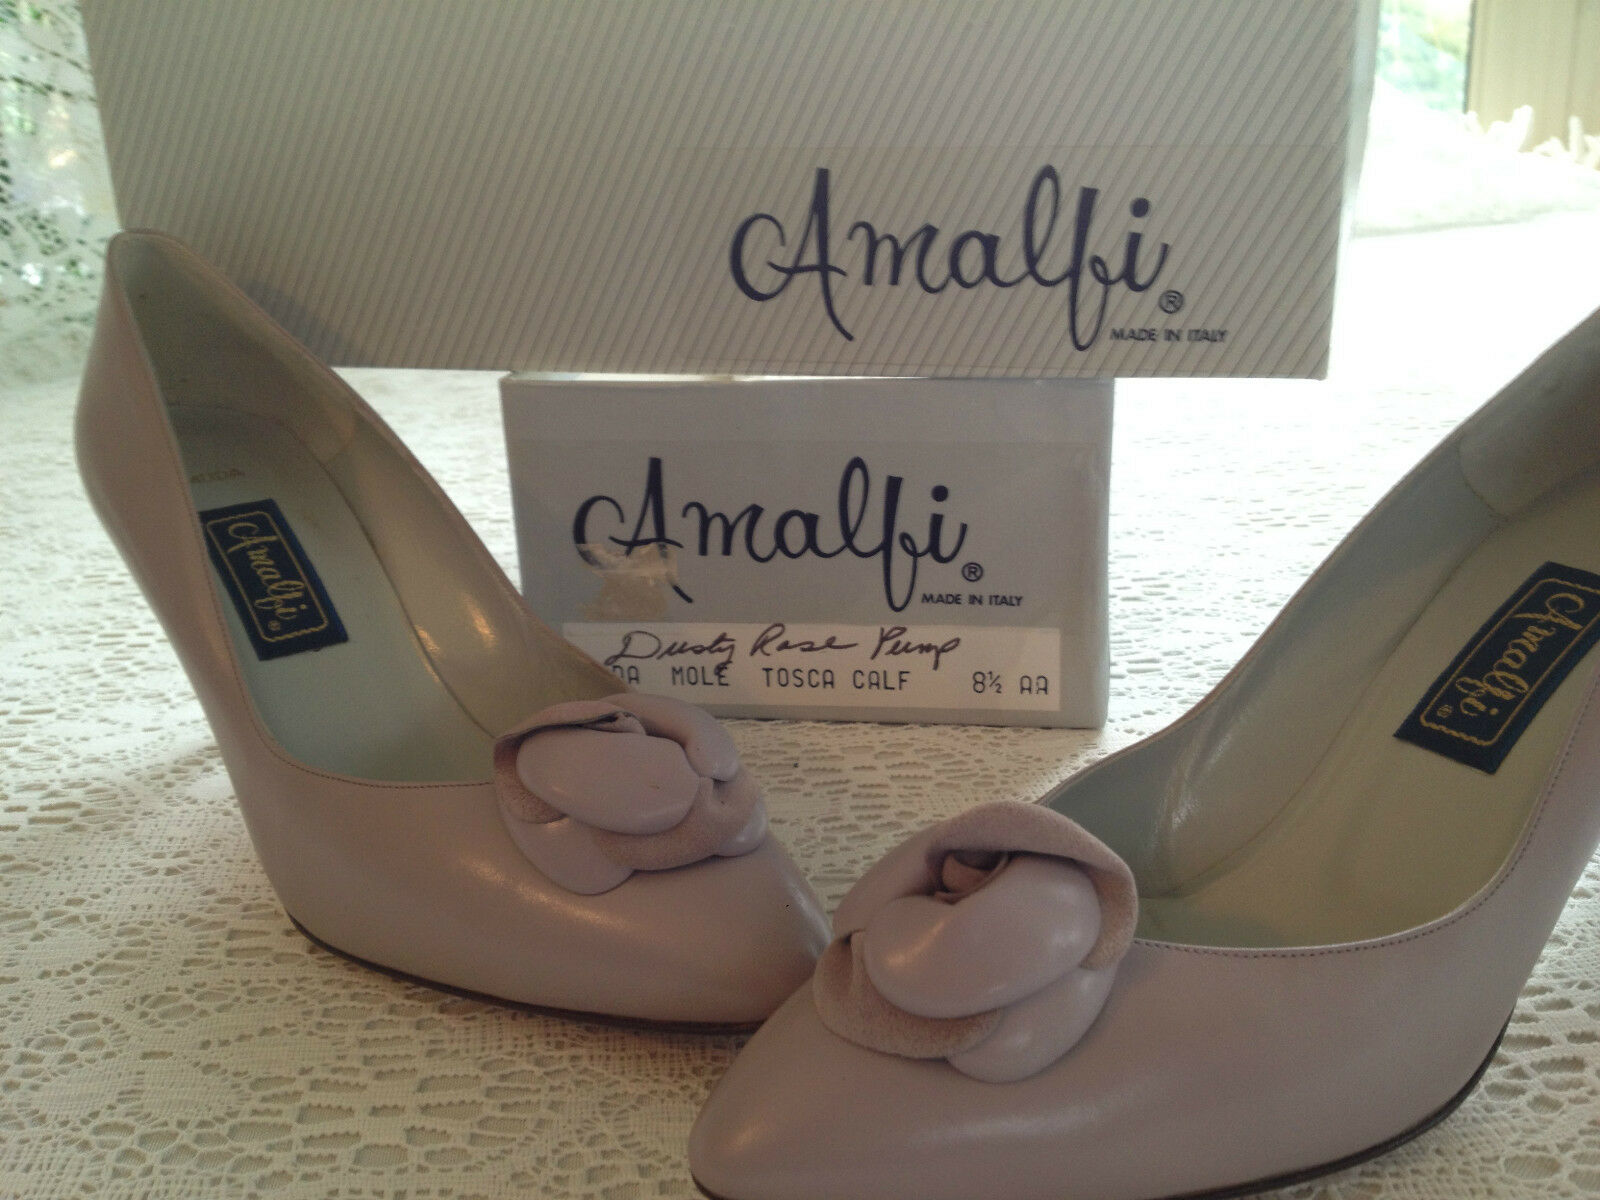 LADYS DUSTY ROSE ROSE ROSE LEATHER PUMP DRESS SHOES NIB AMALFI  MODA TOSCA CALF SIZE 8.5AA 41d004